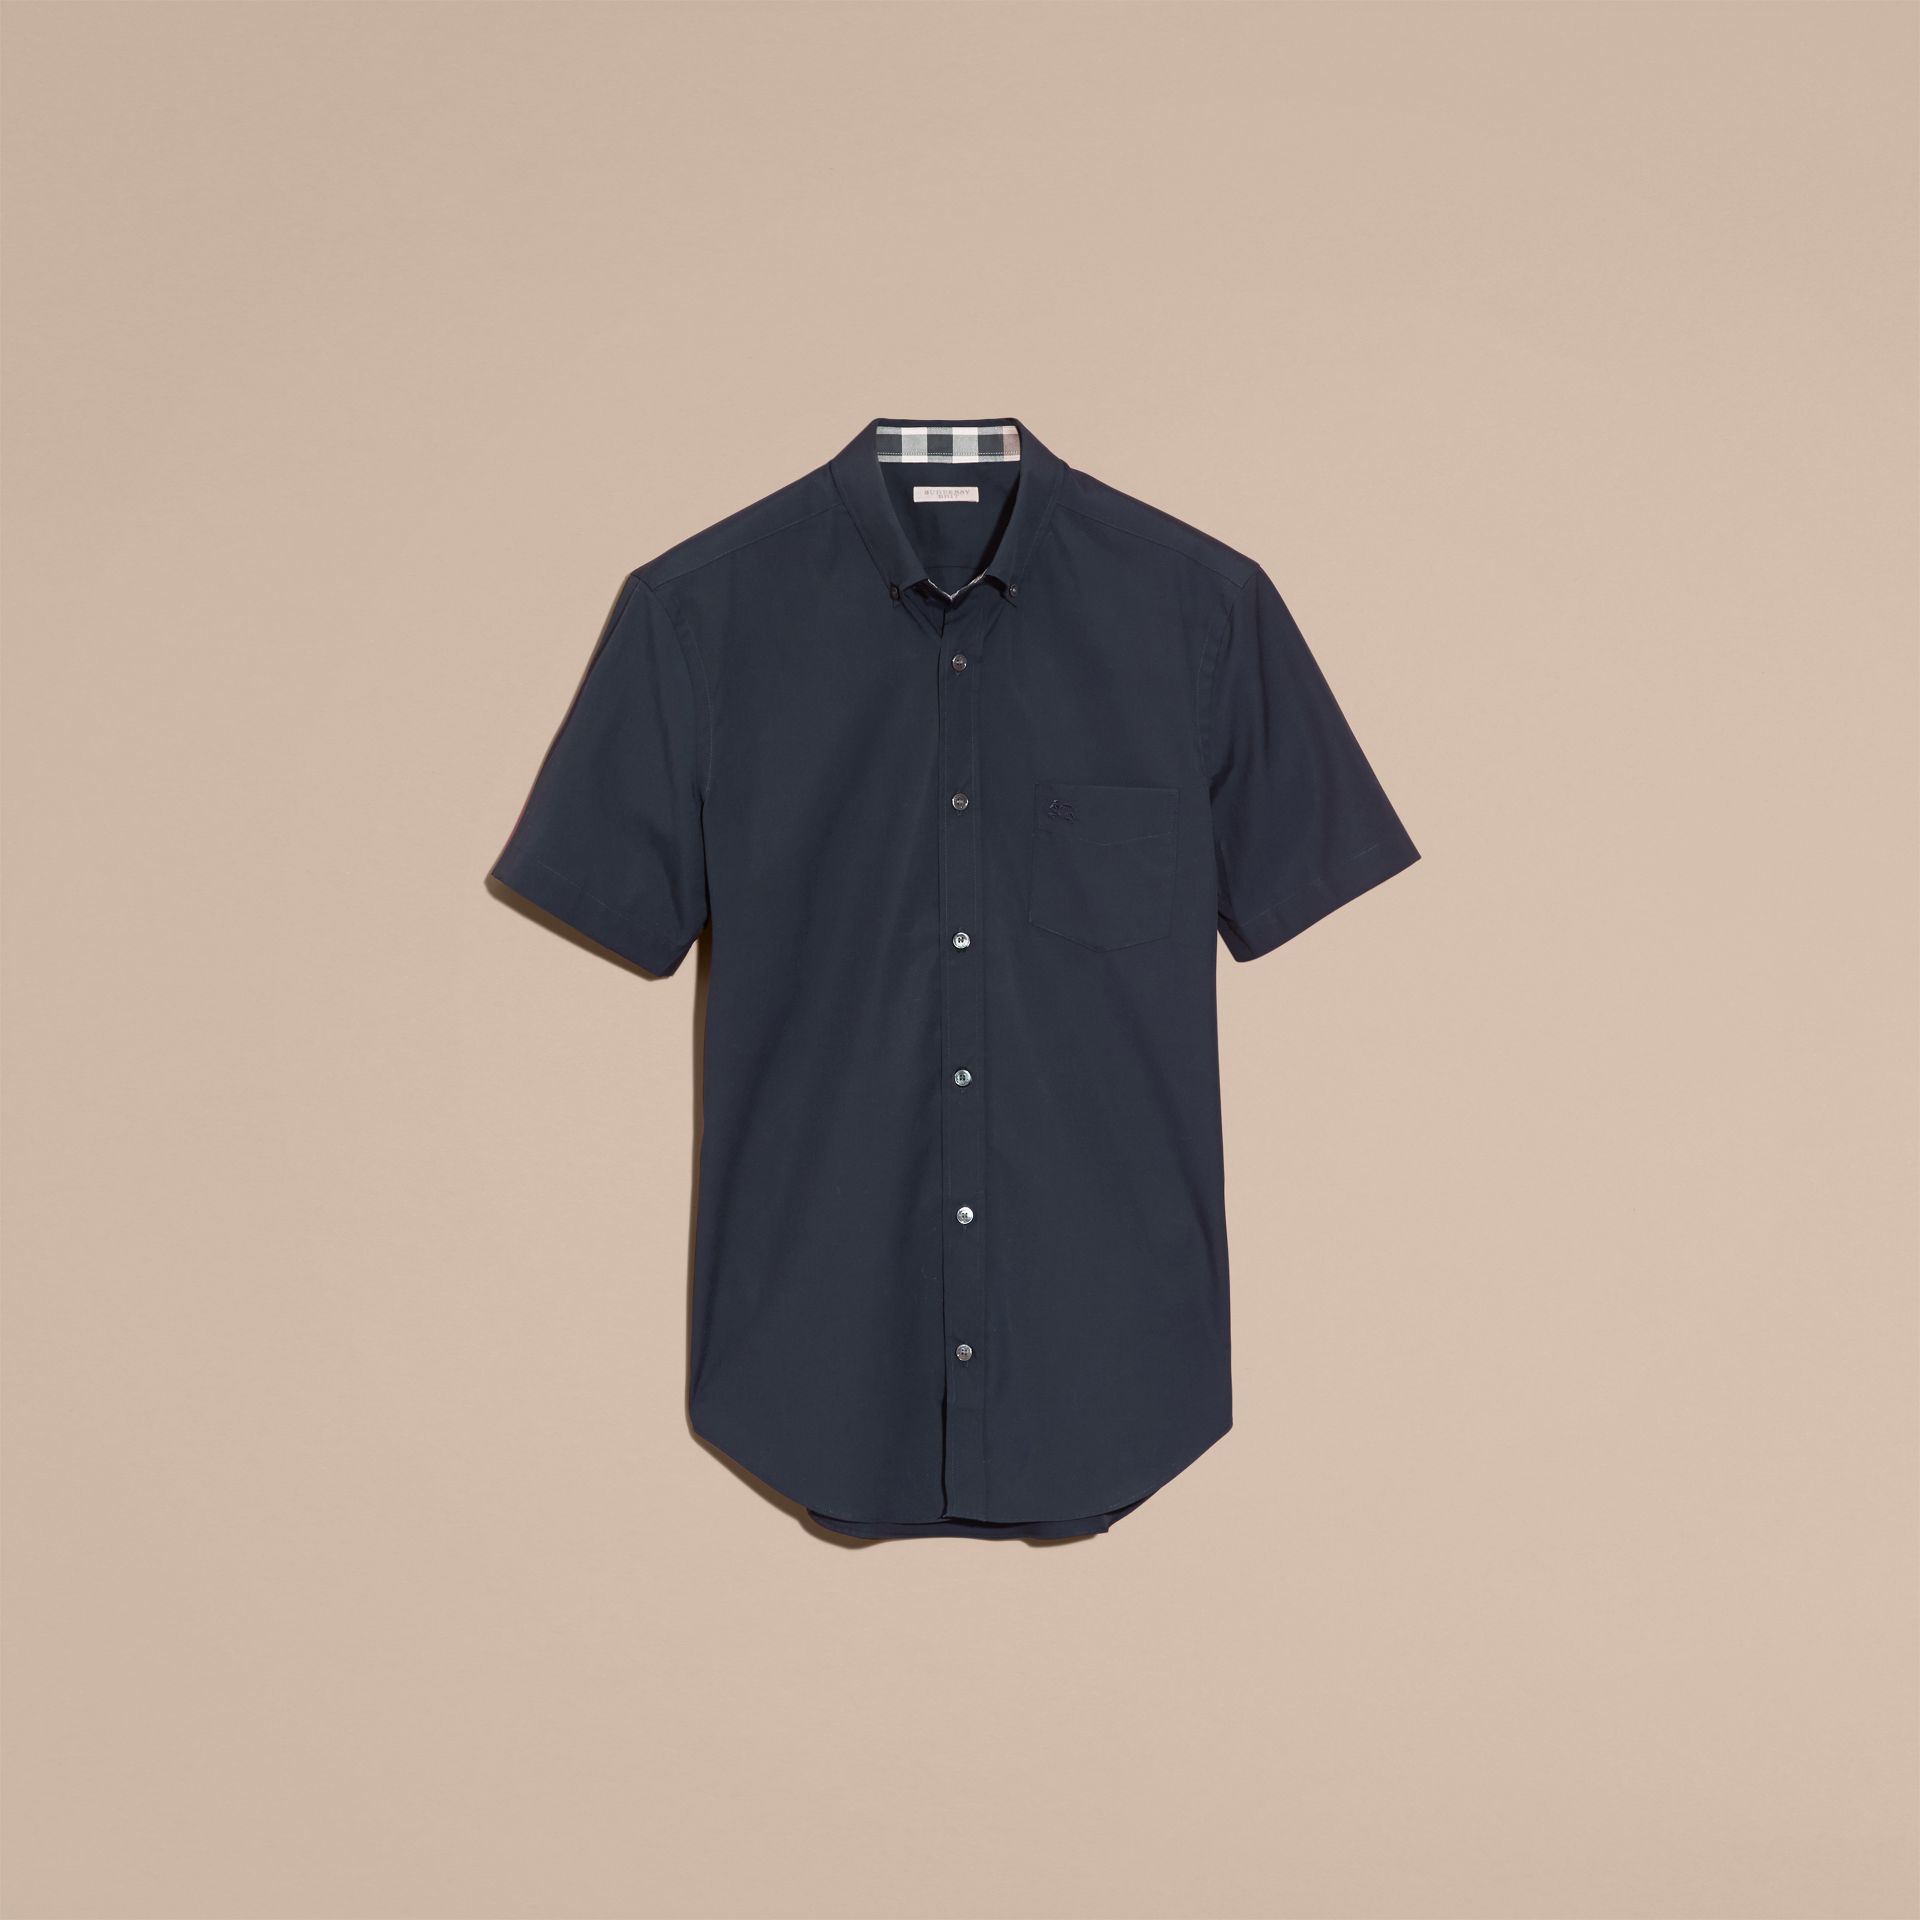 Short-sleeved Stretch Cotton Poplin Shirt in Navy - Men | Burberry - gallery image 4